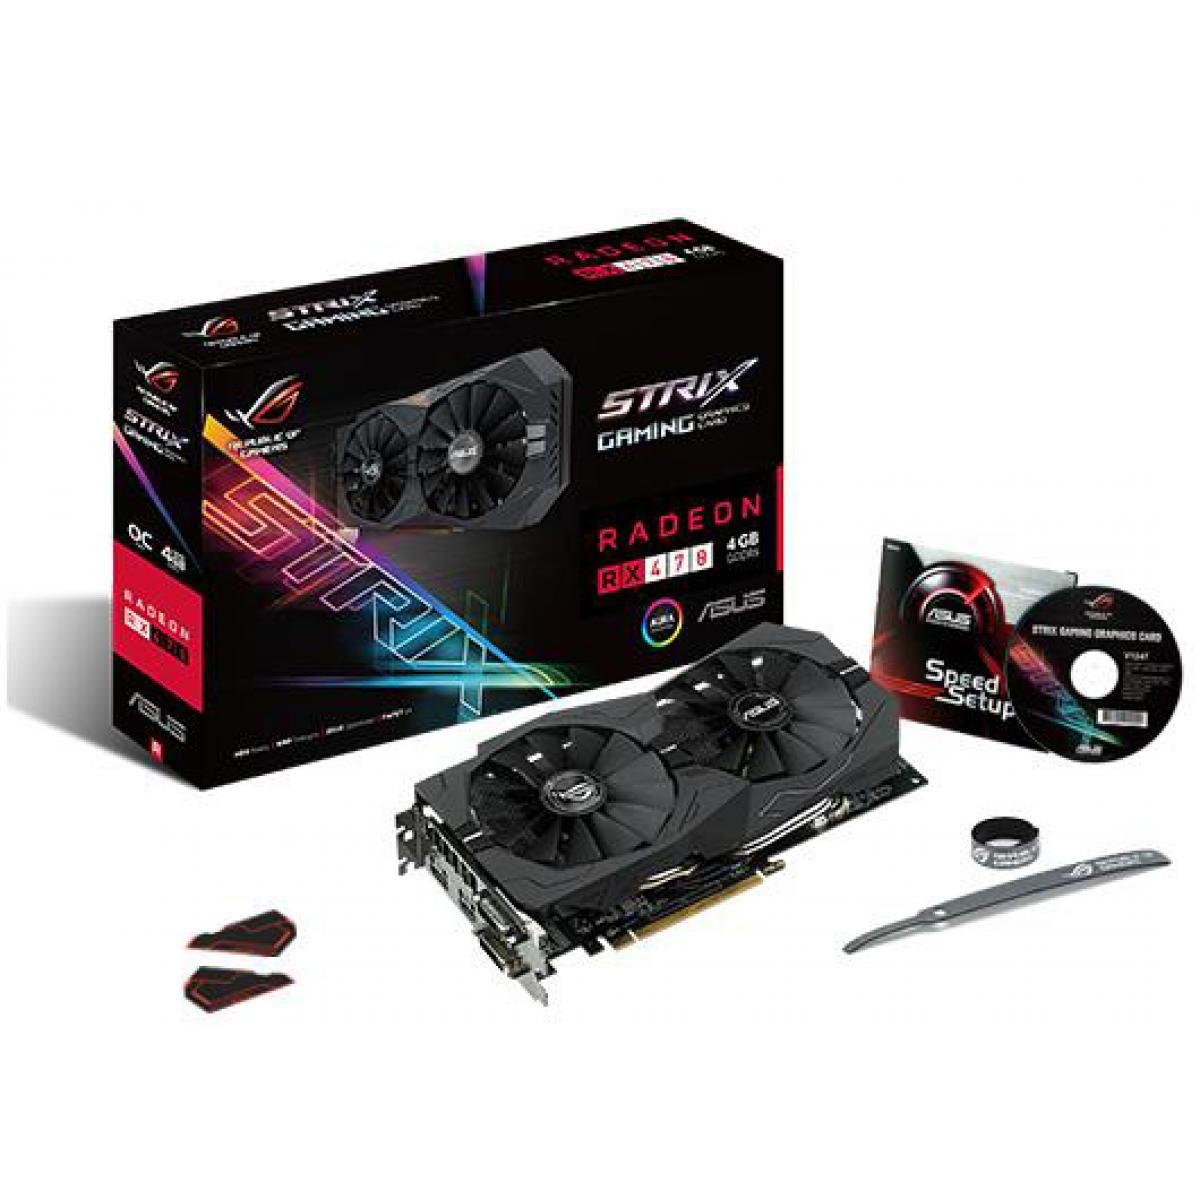 asus rog strix radeon rx 460 4gb oc edition review